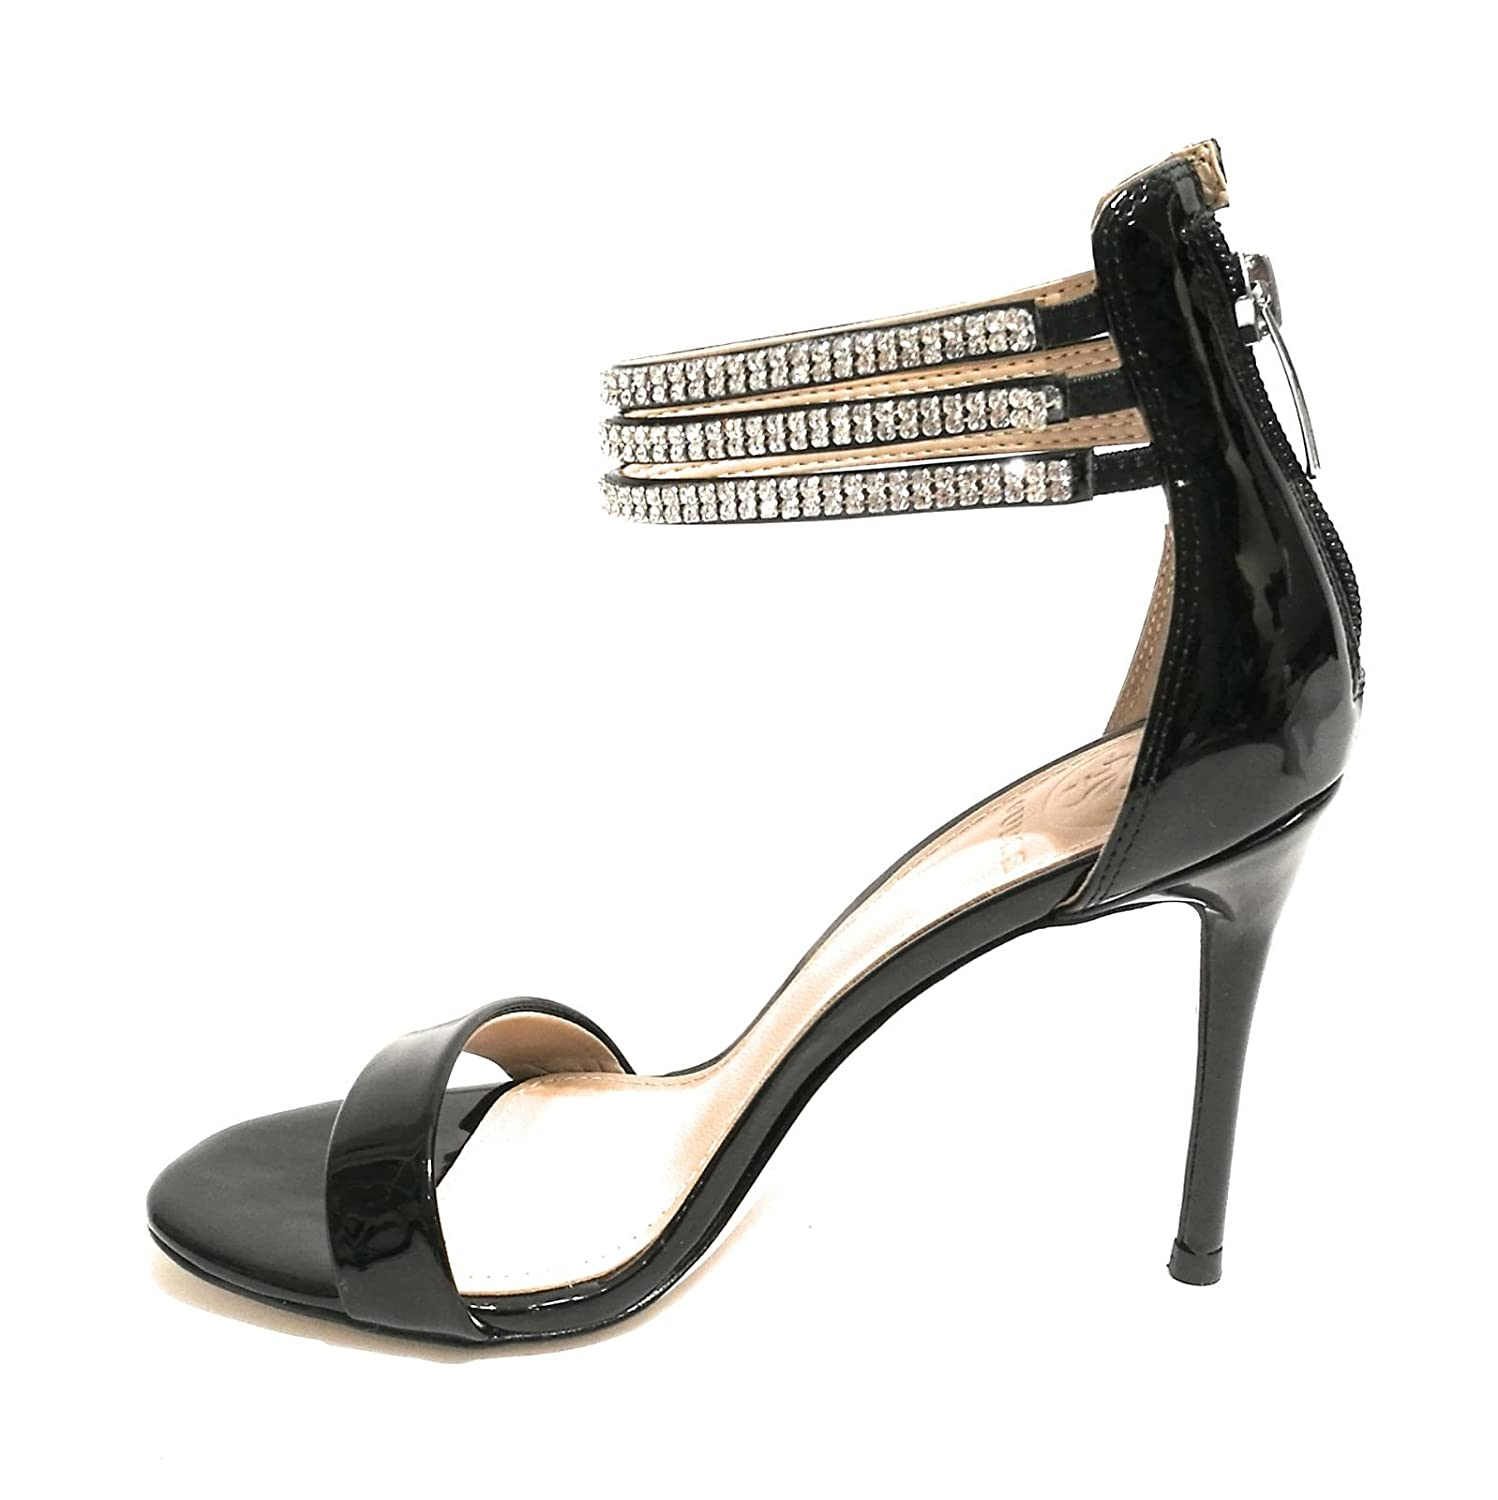 Guess Damen Damen Guess Footwear Dress Sandal Slingback Pumps Schwarz 994919